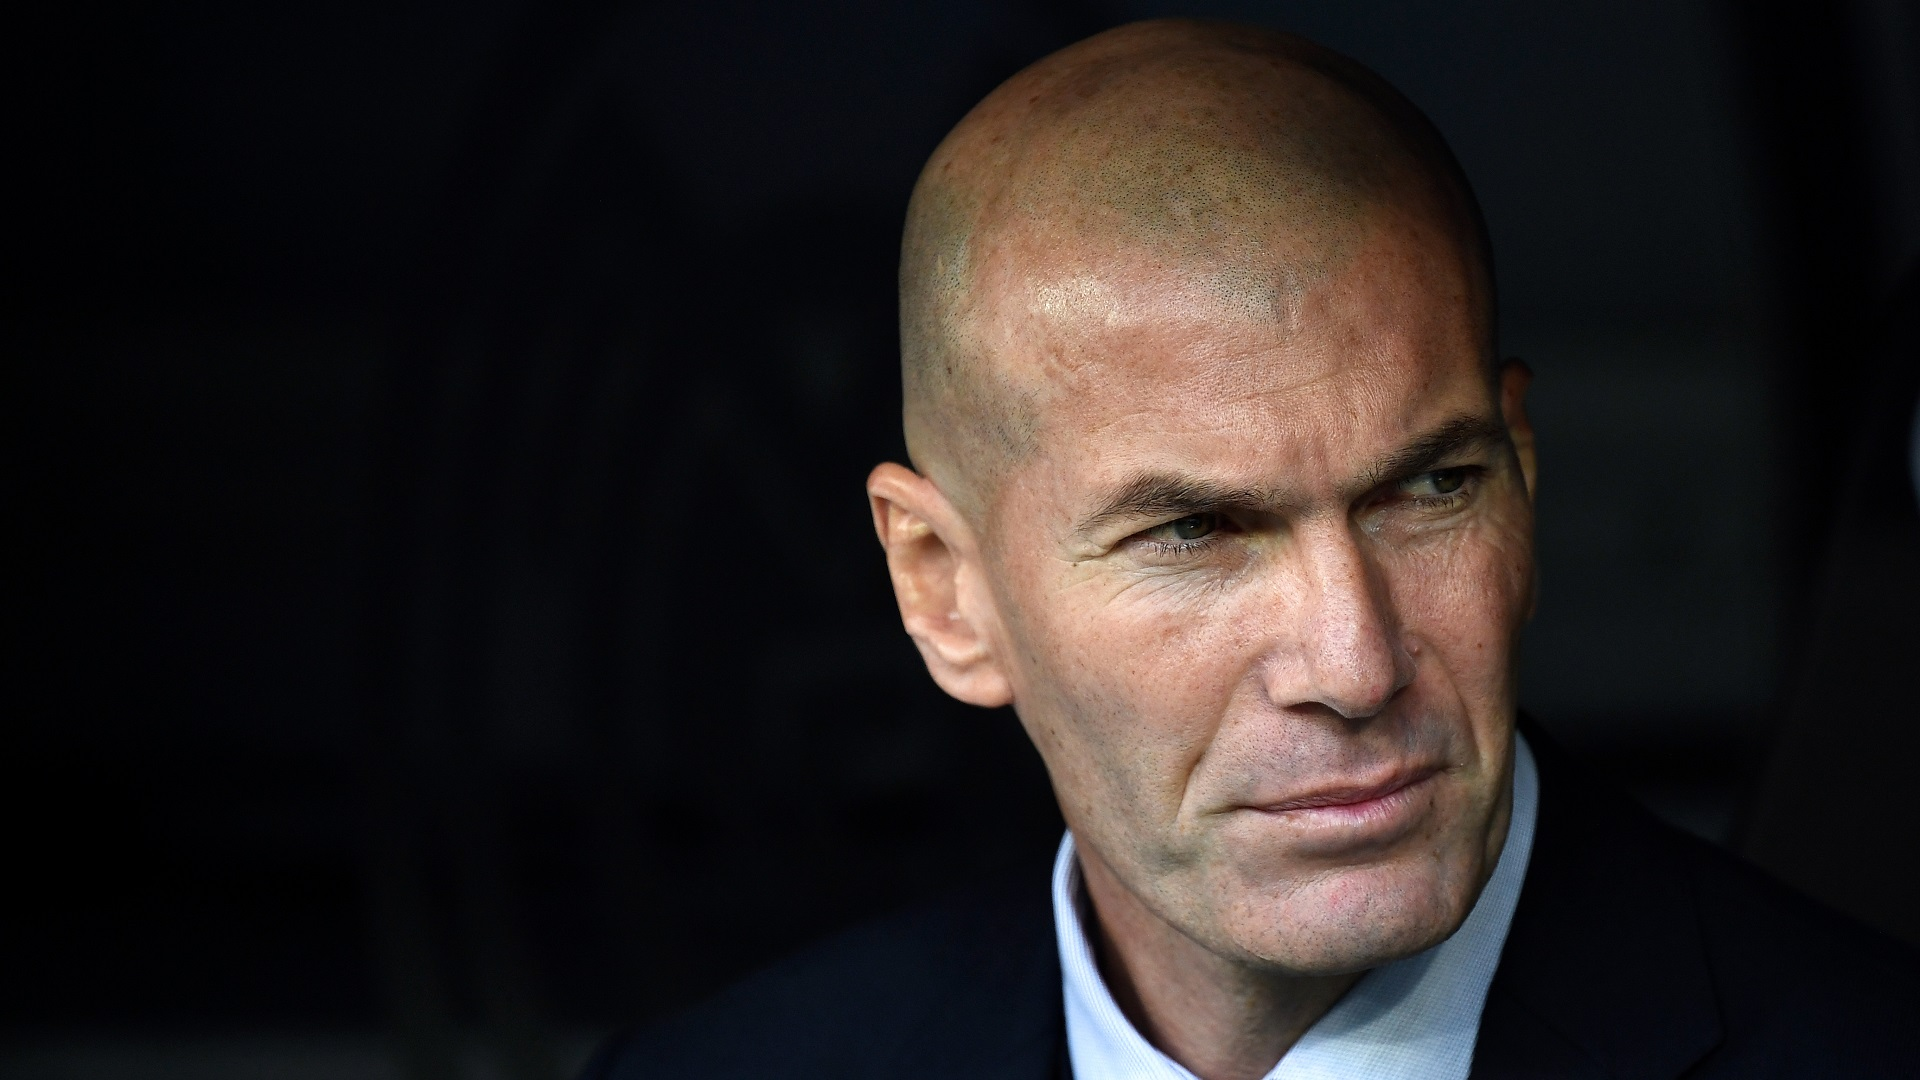 'It takes a lot out of you' – Zidane admits uncertainty over Real Madrid future